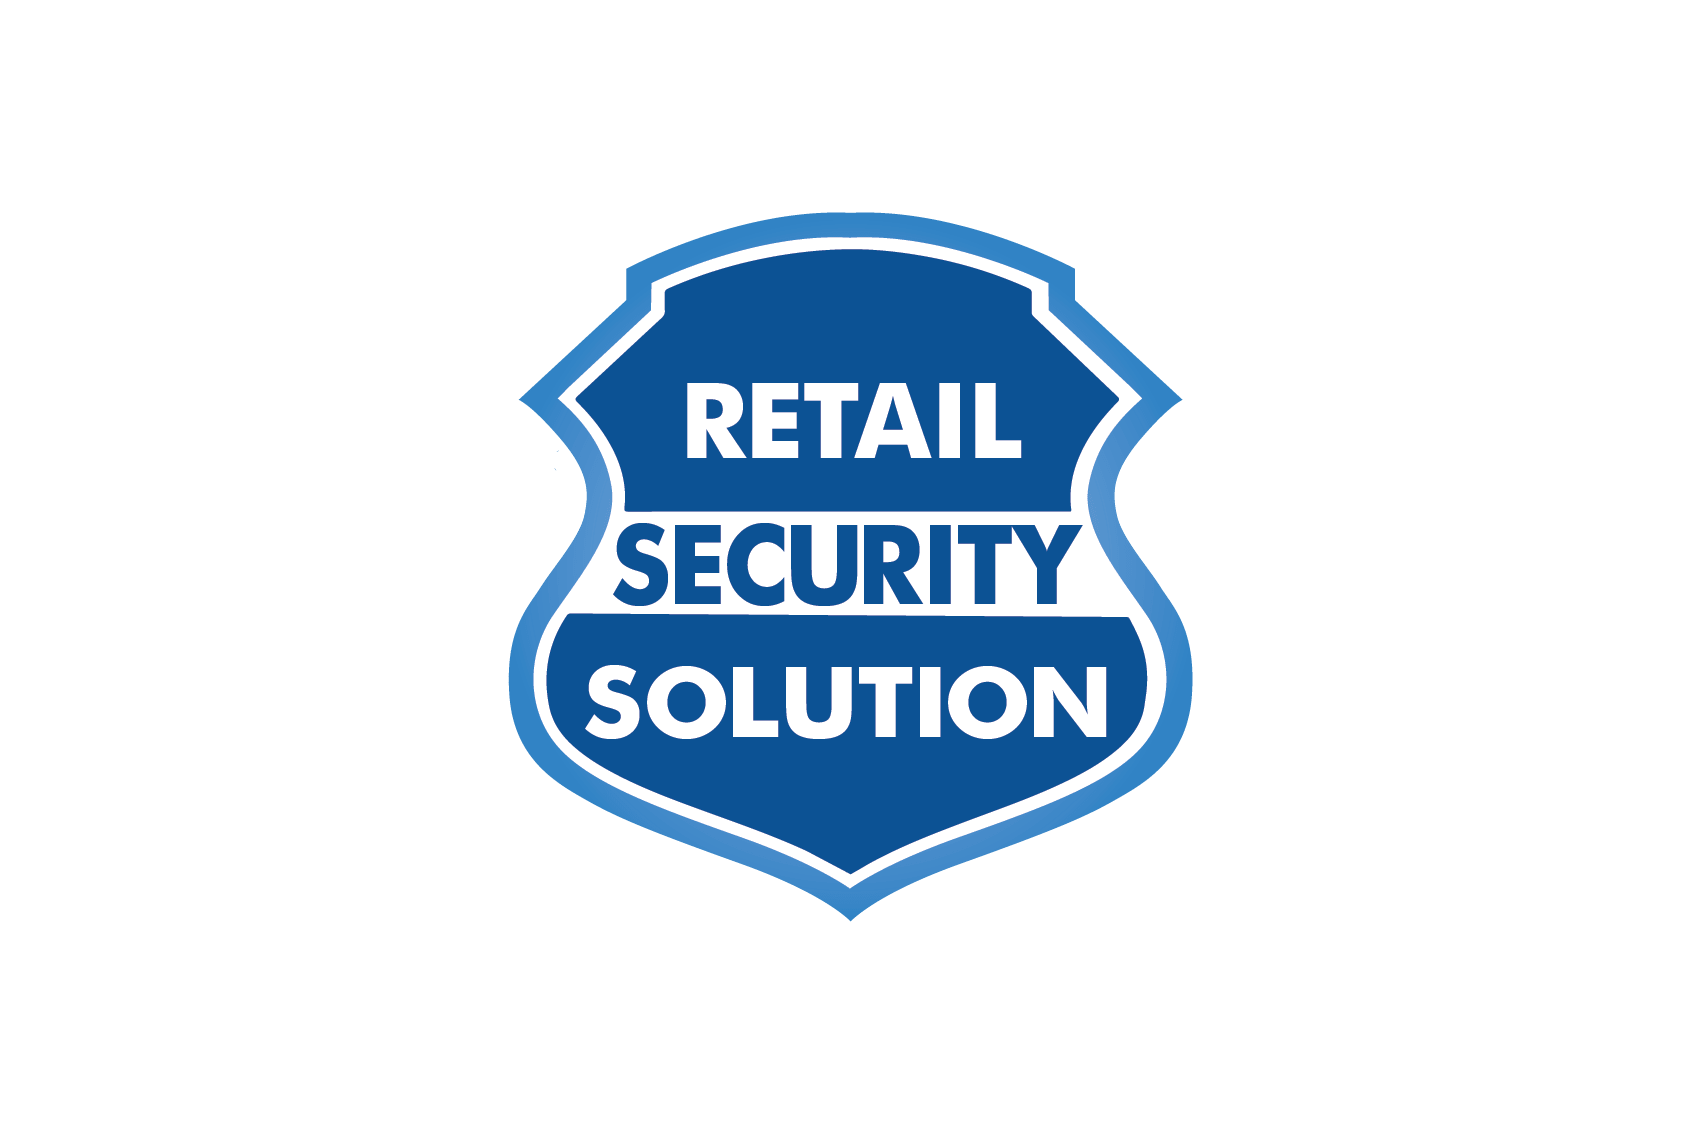 Retail Security Solution by Flexspace